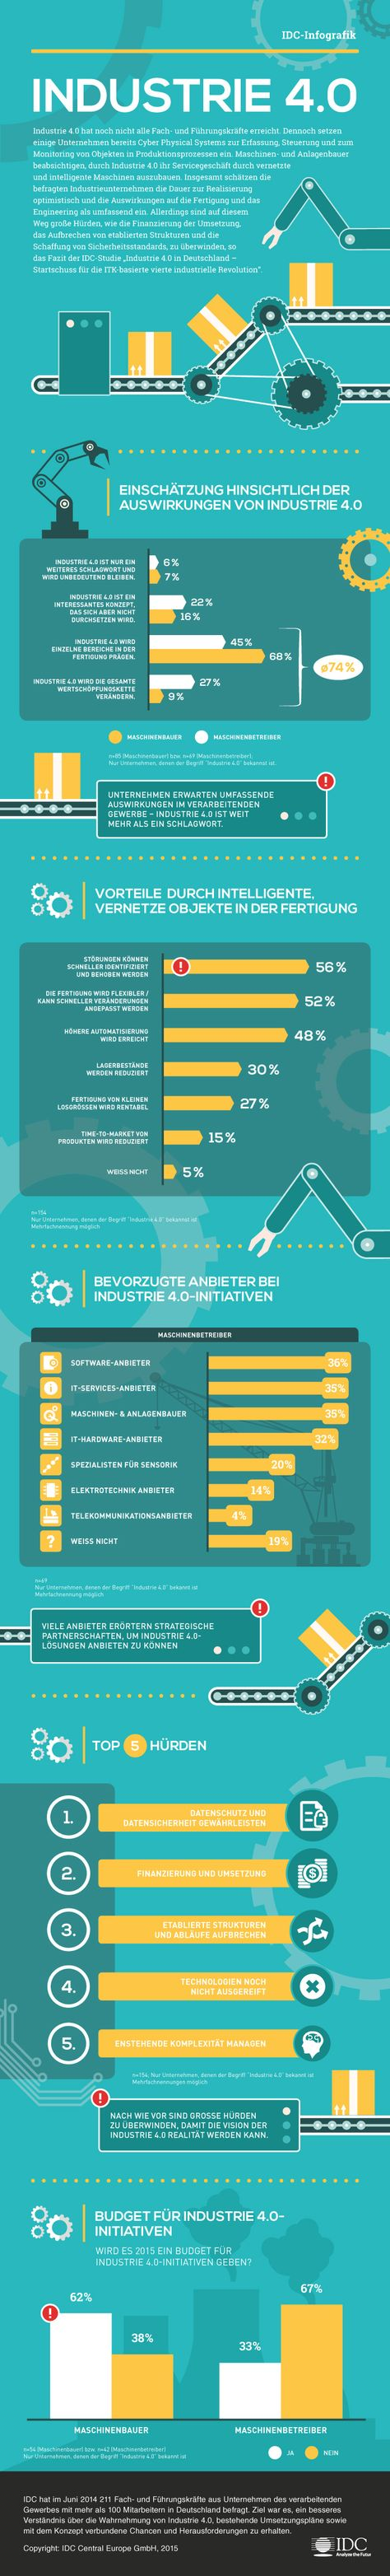 15 best Industrie 4.0 images on Pinterest | Big data, Germany and ...